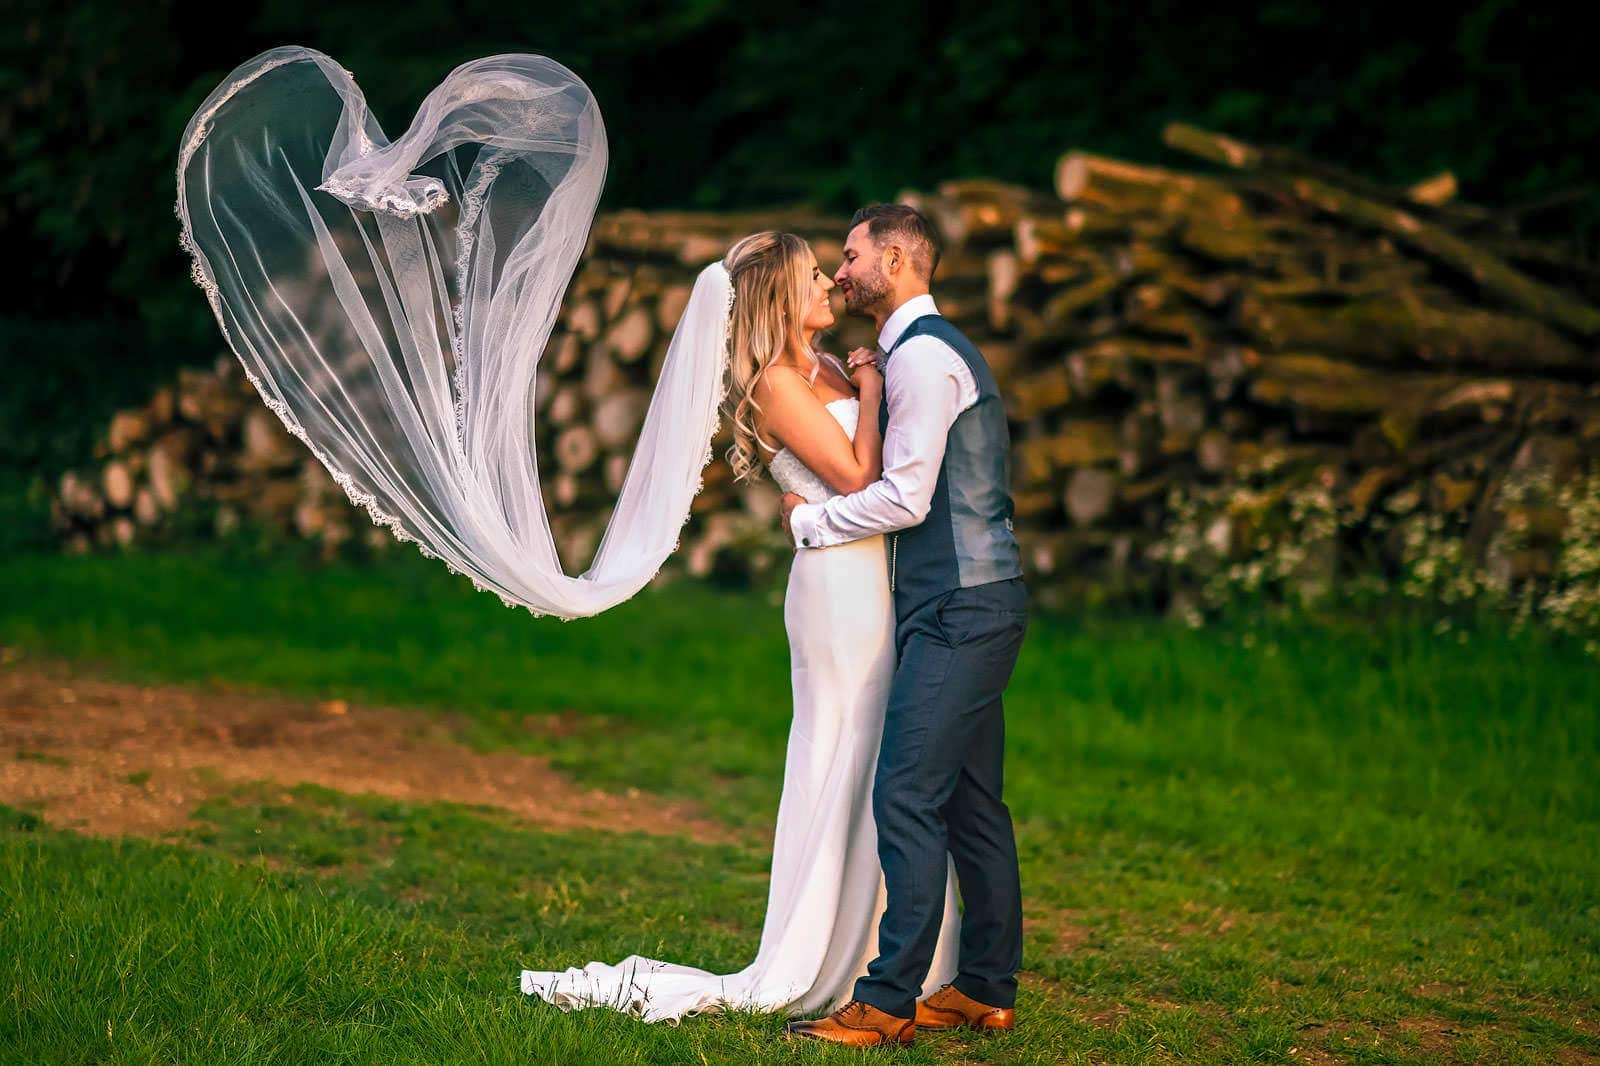 Wedding photography from Cripps